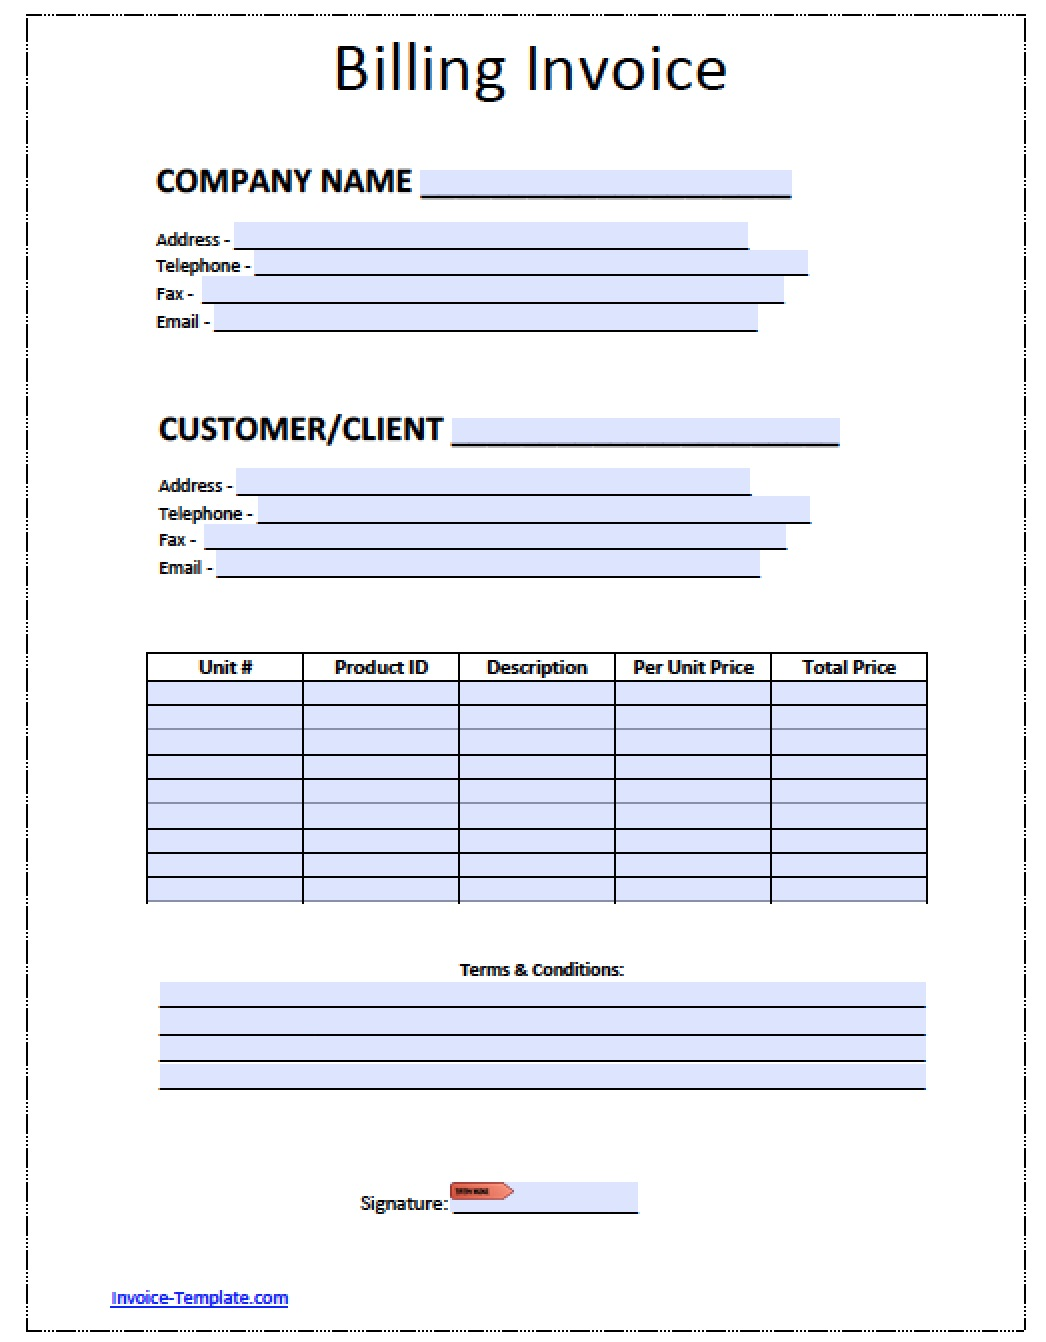 Howcanigettallerus  Ravishing Billing Invoice Invoices Faq U Cloudflare Support Billing  With Exciting Free Billing Invoice Template  Excel  Pdf  Word Doc  Billing With Appealing What Is An Invoice For Also Invoice Excel Download In Addition Creating An Invoice For Freelance Work And Wawf  In  Invoice As Well As Ms Access Invoice Additionally Online Invoicing Solutions From Happytomco With Howcanigettallerus  Exciting Billing Invoice Invoices Faq U Cloudflare Support Billing  With Appealing Free Billing Invoice Template  Excel  Pdf  Word Doc  Billing And Ravishing What Is An Invoice For Also Invoice Excel Download In Addition Creating An Invoice For Freelance Work From Happytomco